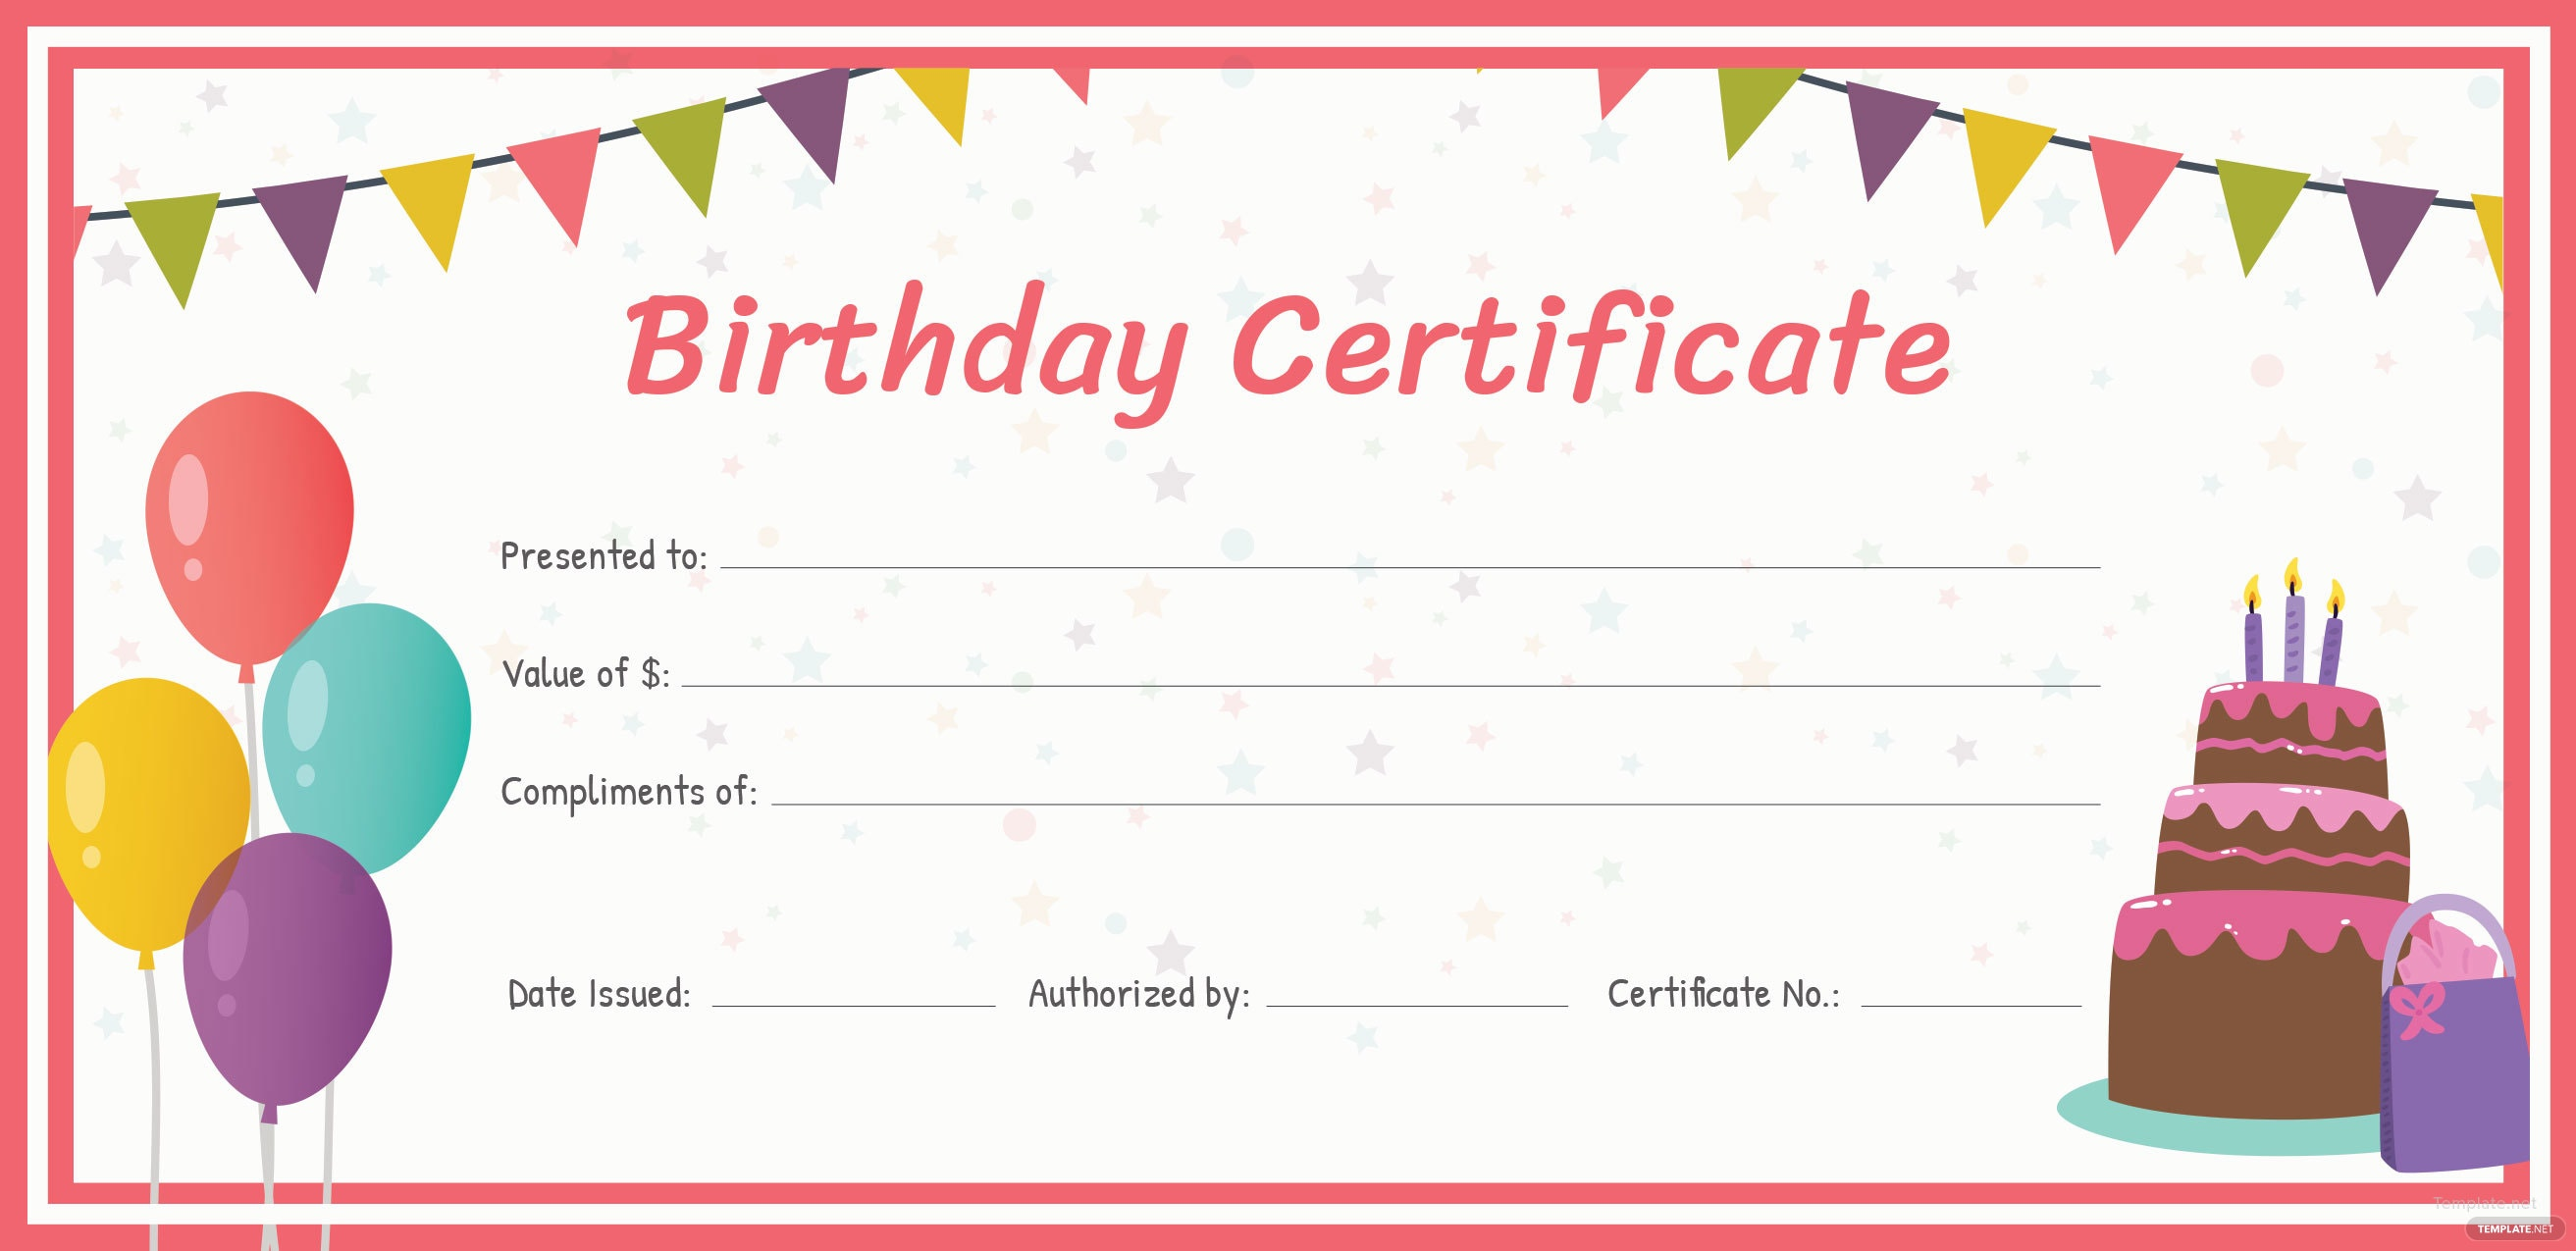 Free birthday gift certificate template in adobe for Gift certificate template for mac